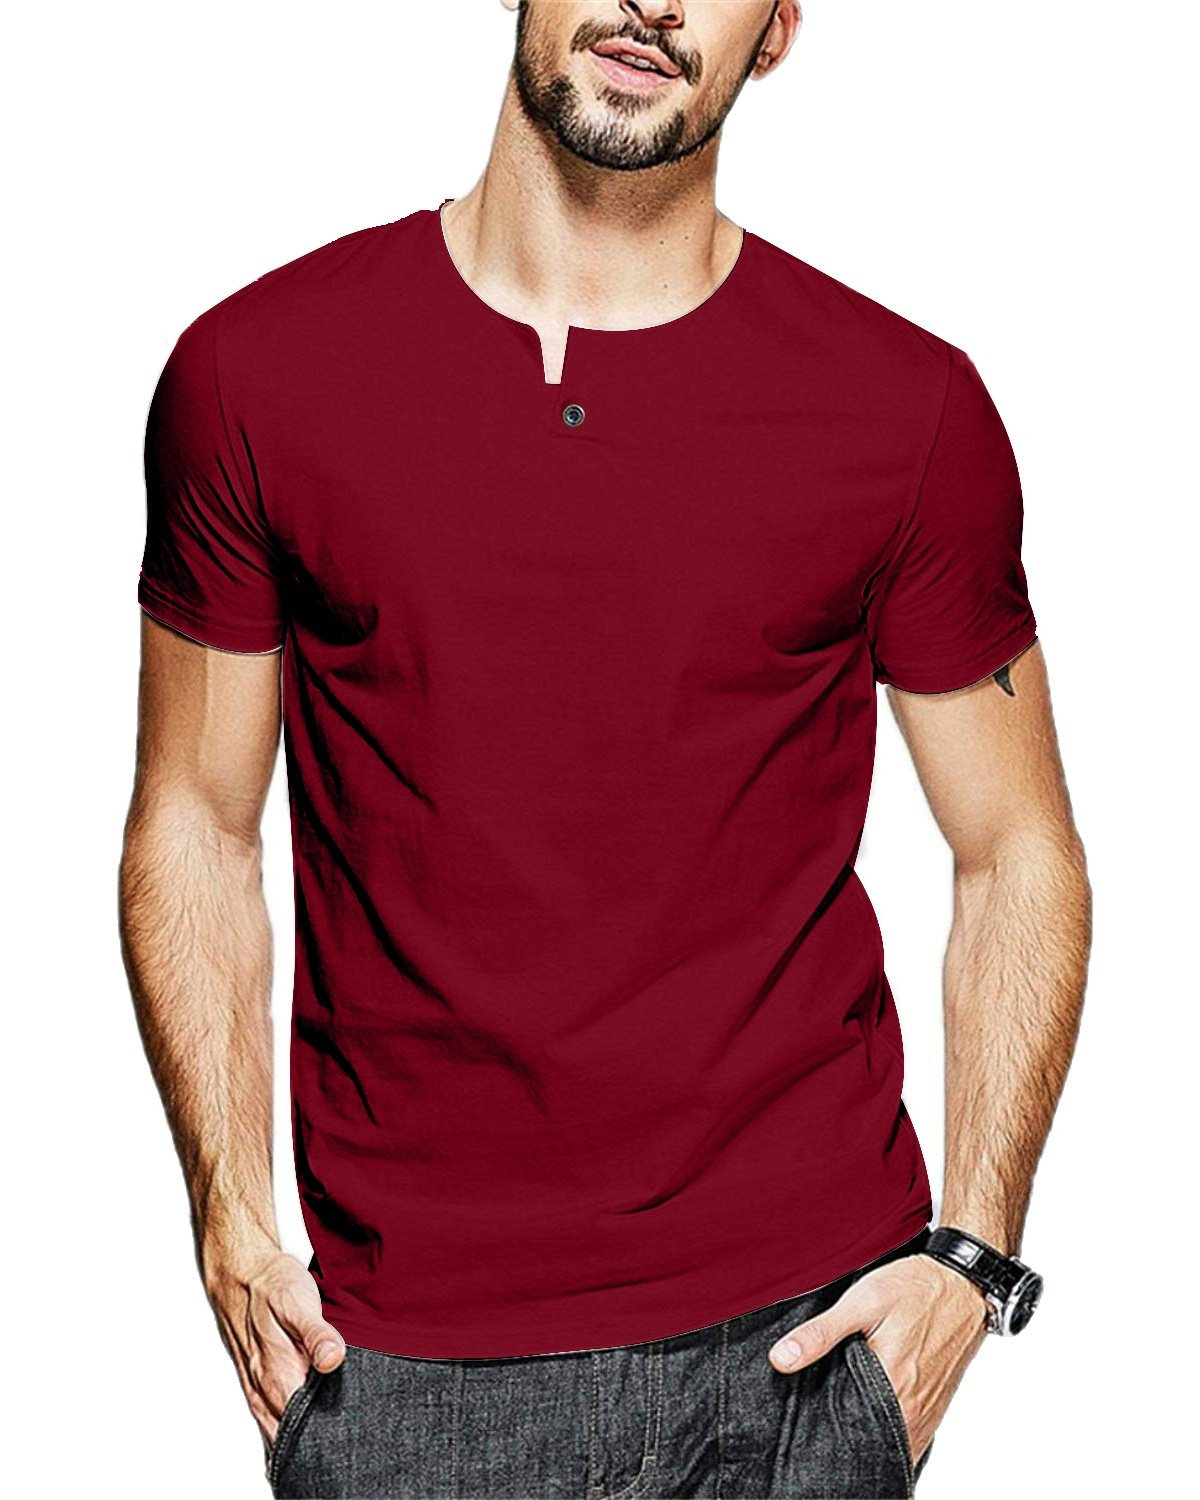 JNC 100% Cotton Mens Summer Casual Button Slim Fit Pure Color Short Sleeve Henley T-Shirts (Medium, Wine Red)